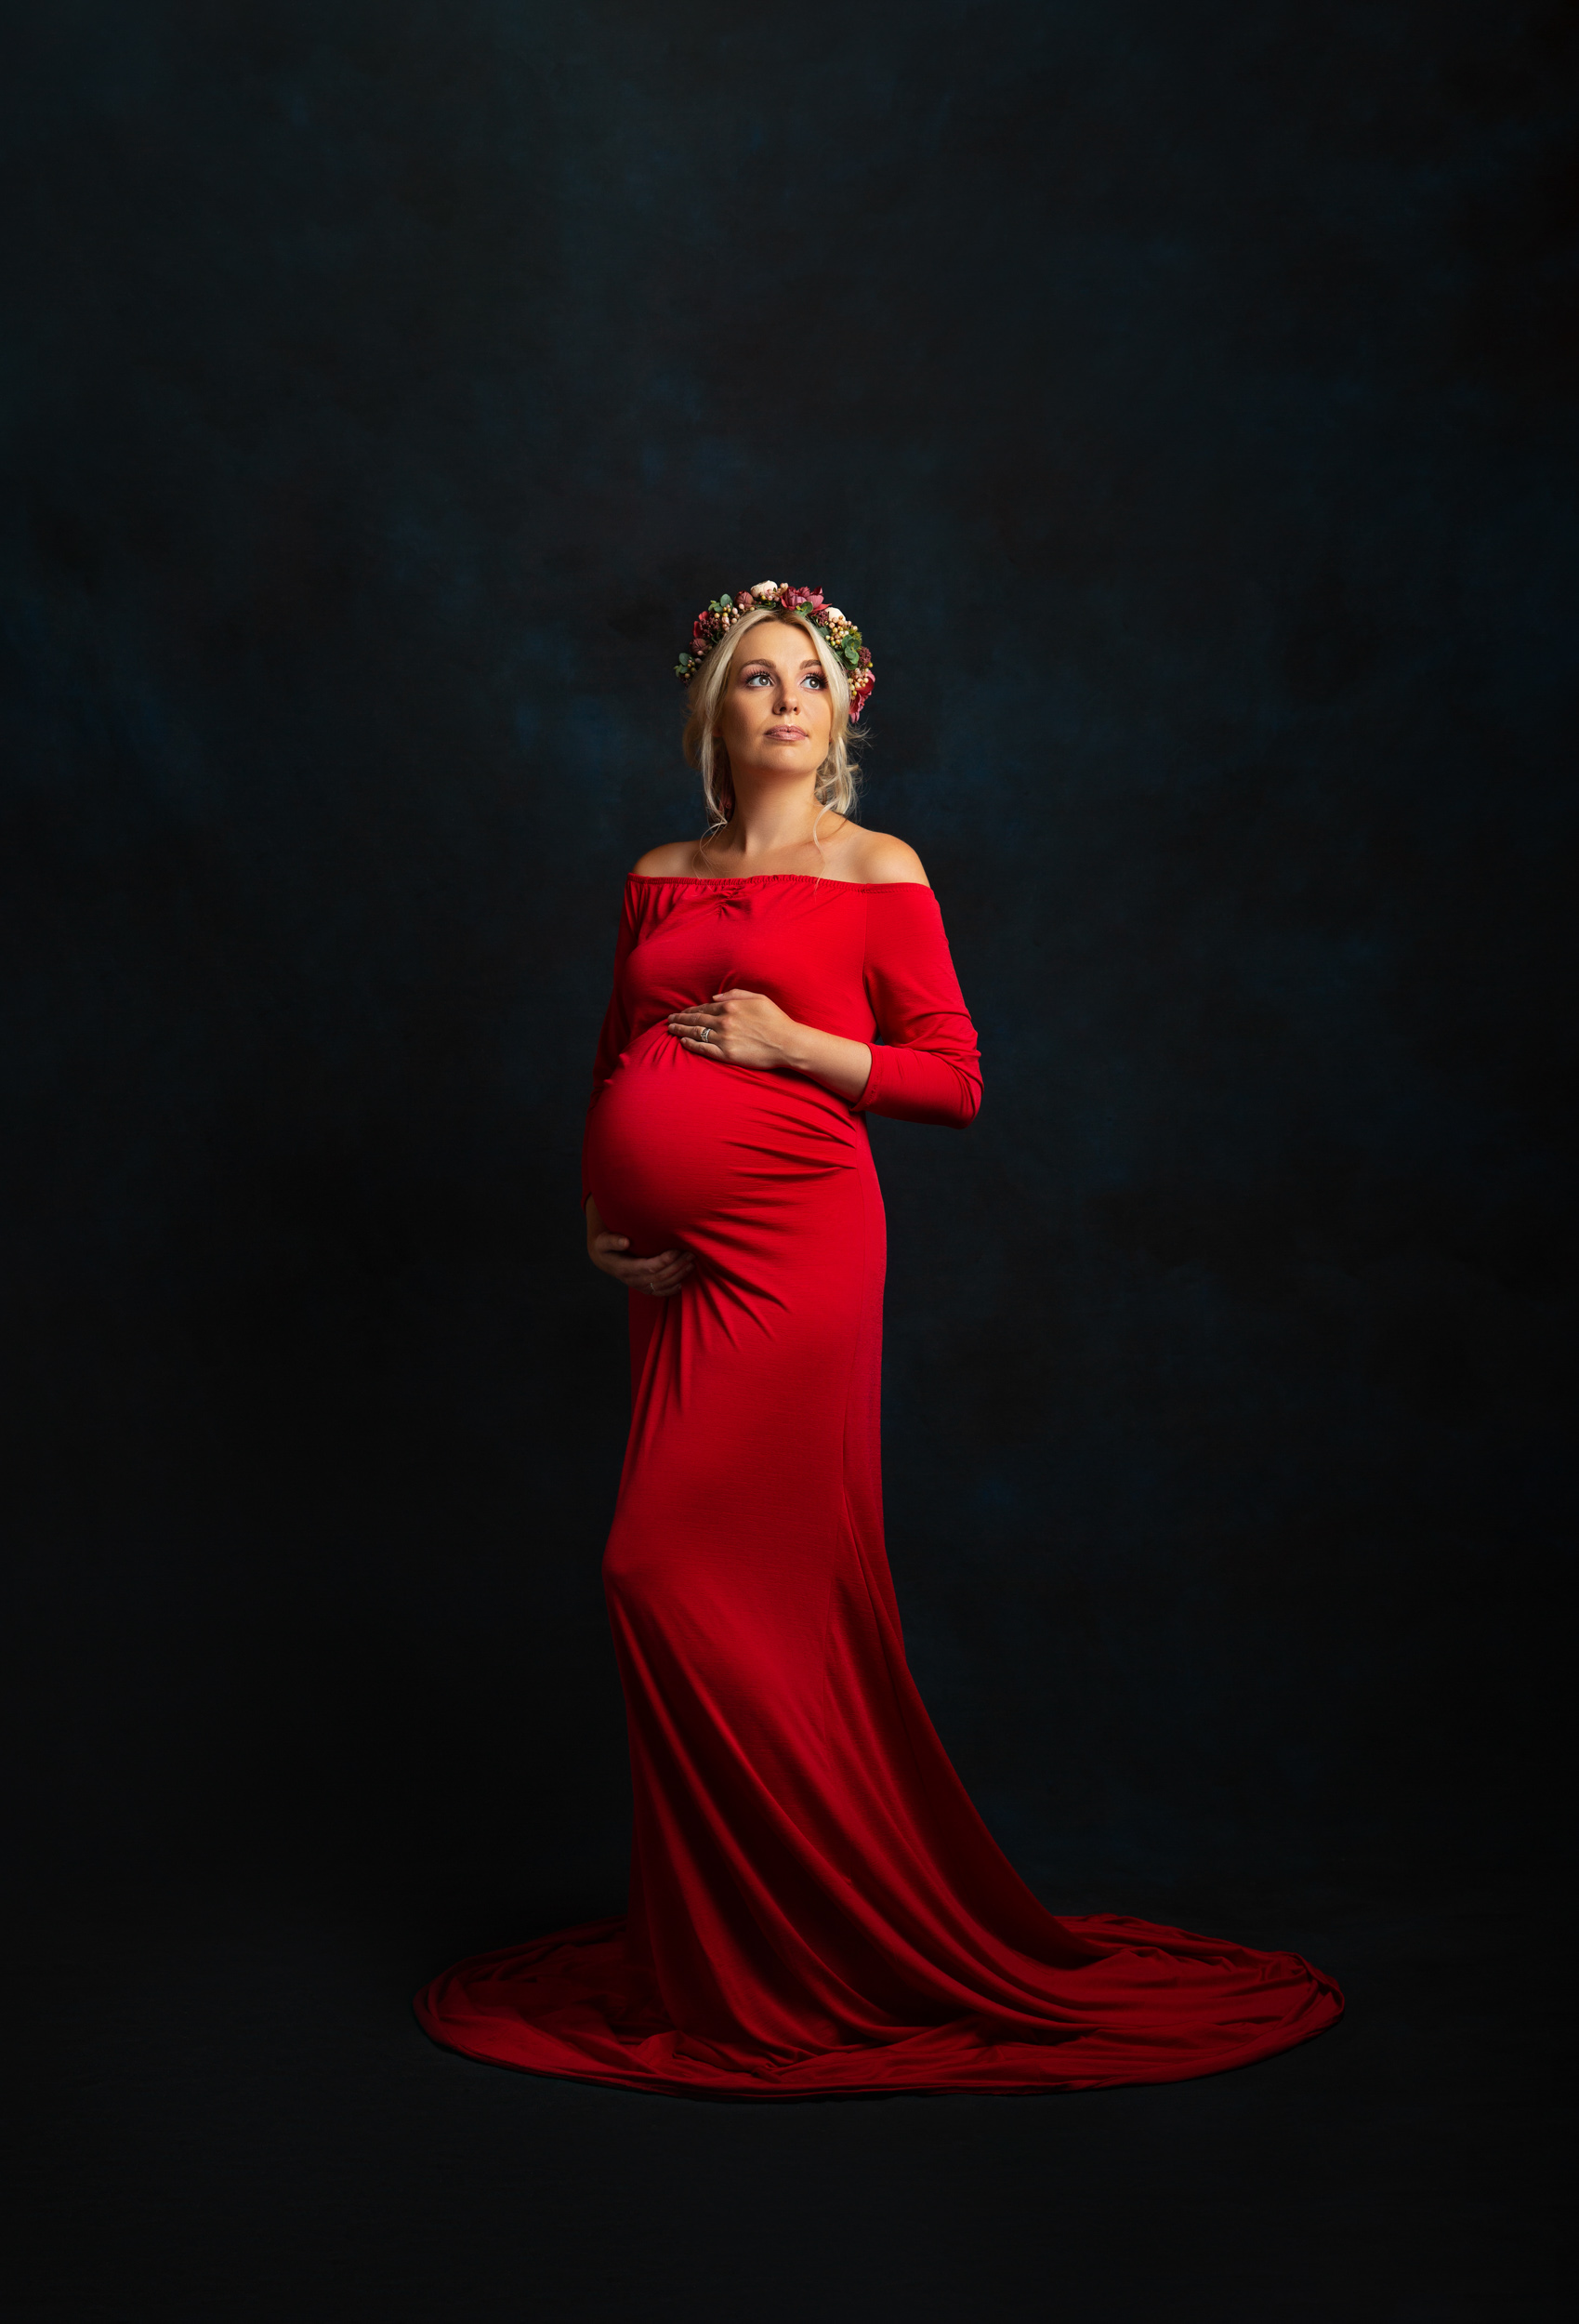 A pregnant lady in a striking red gown on a dark blue backdrop at her maternity photo shoot in Sandbach, Cheshire